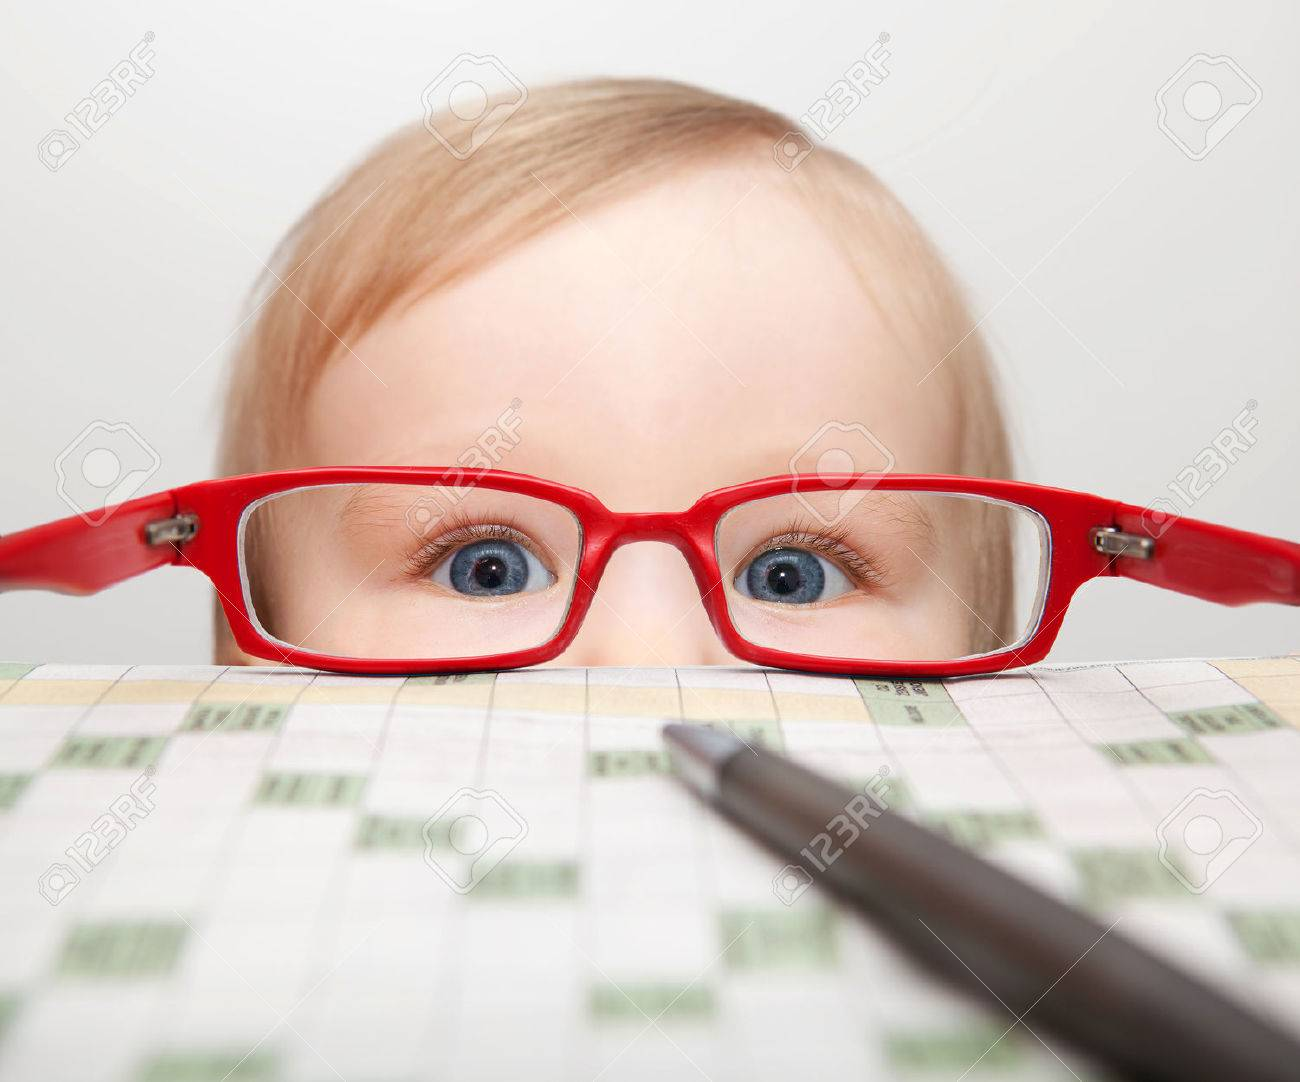 Little boy looking through glasses Stock Photo - 26535149